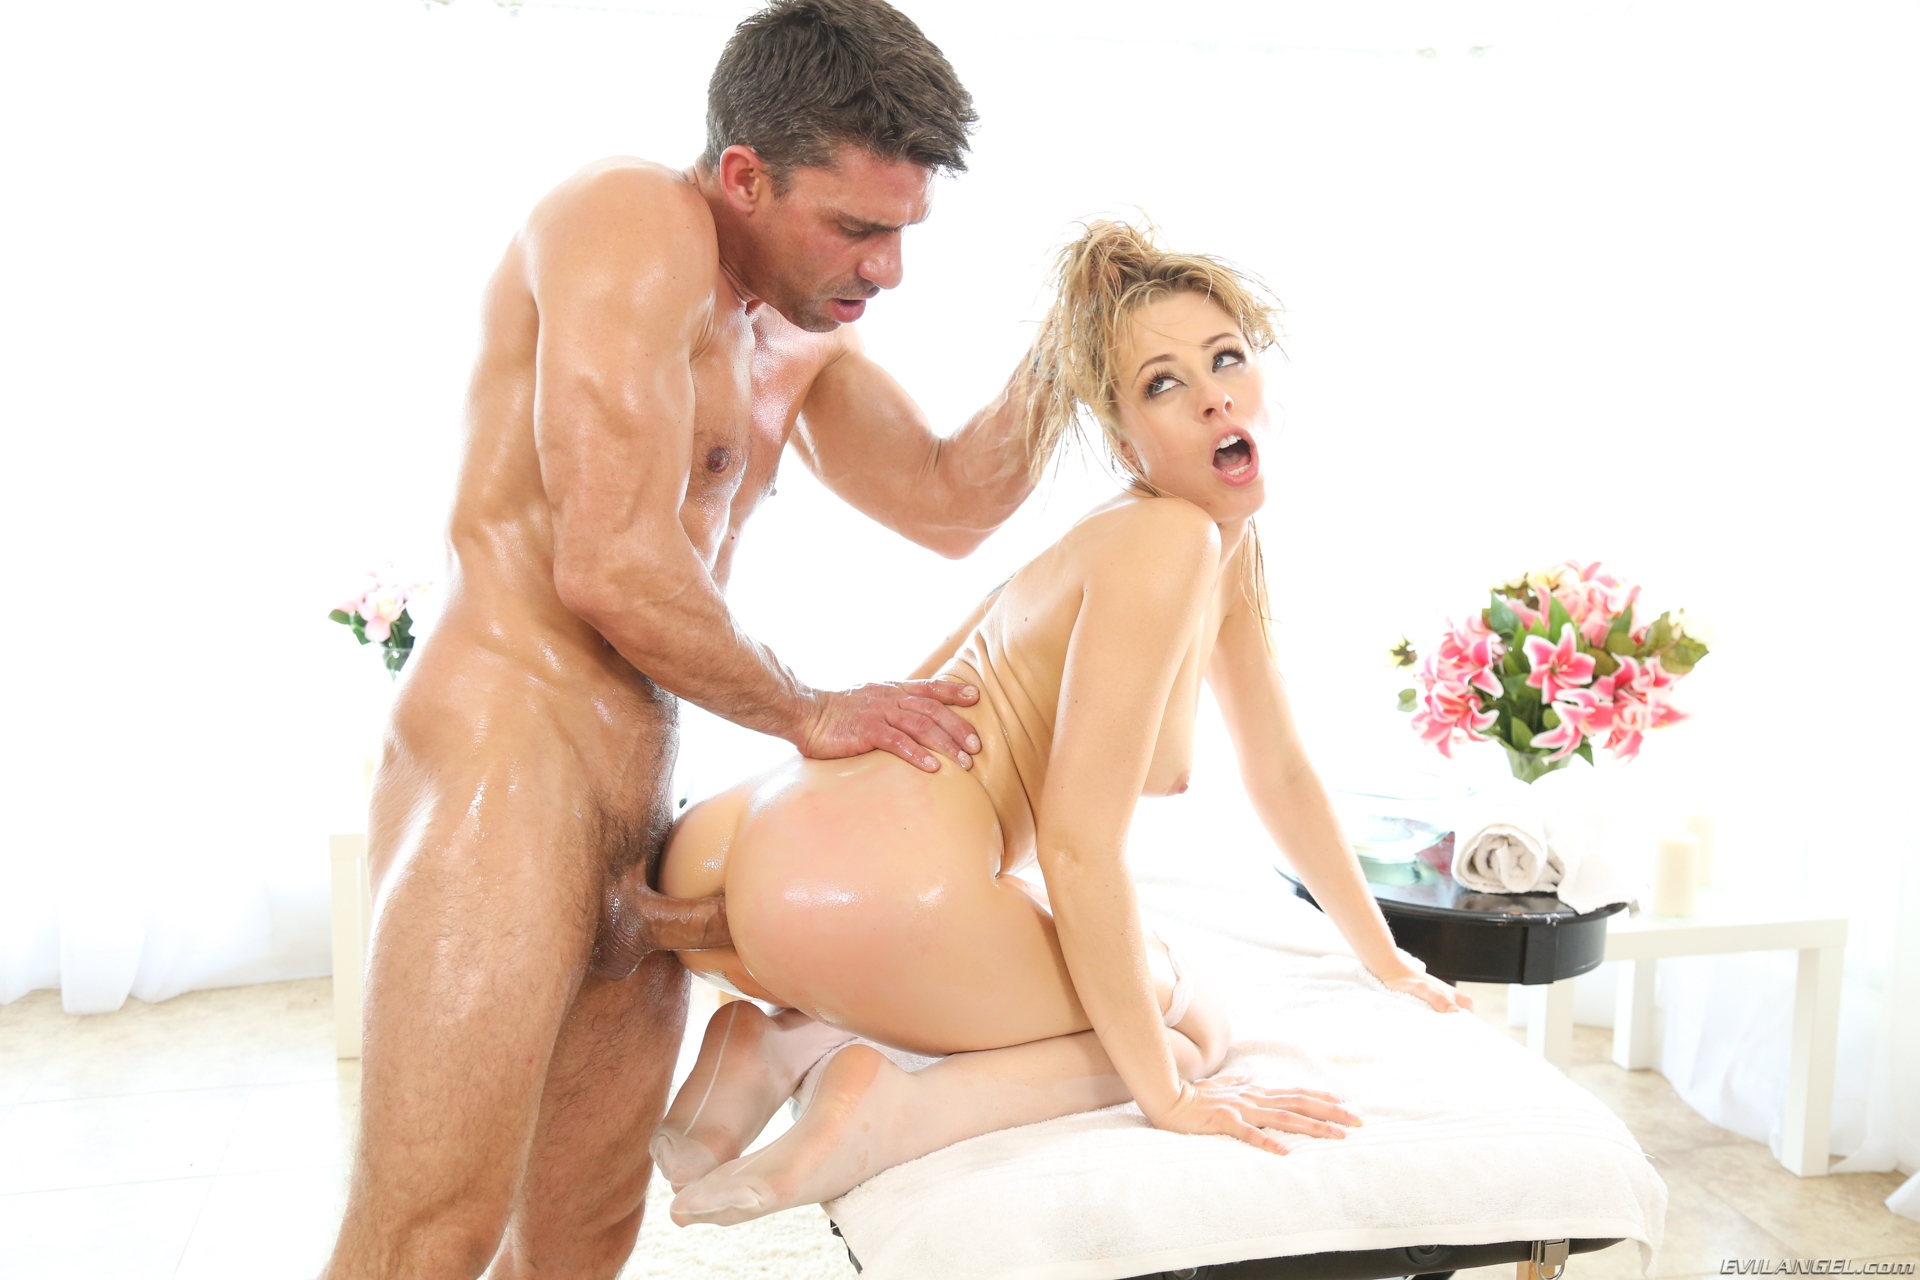 Evil Angel – Goldie Glock gets her athletic body worked out #8